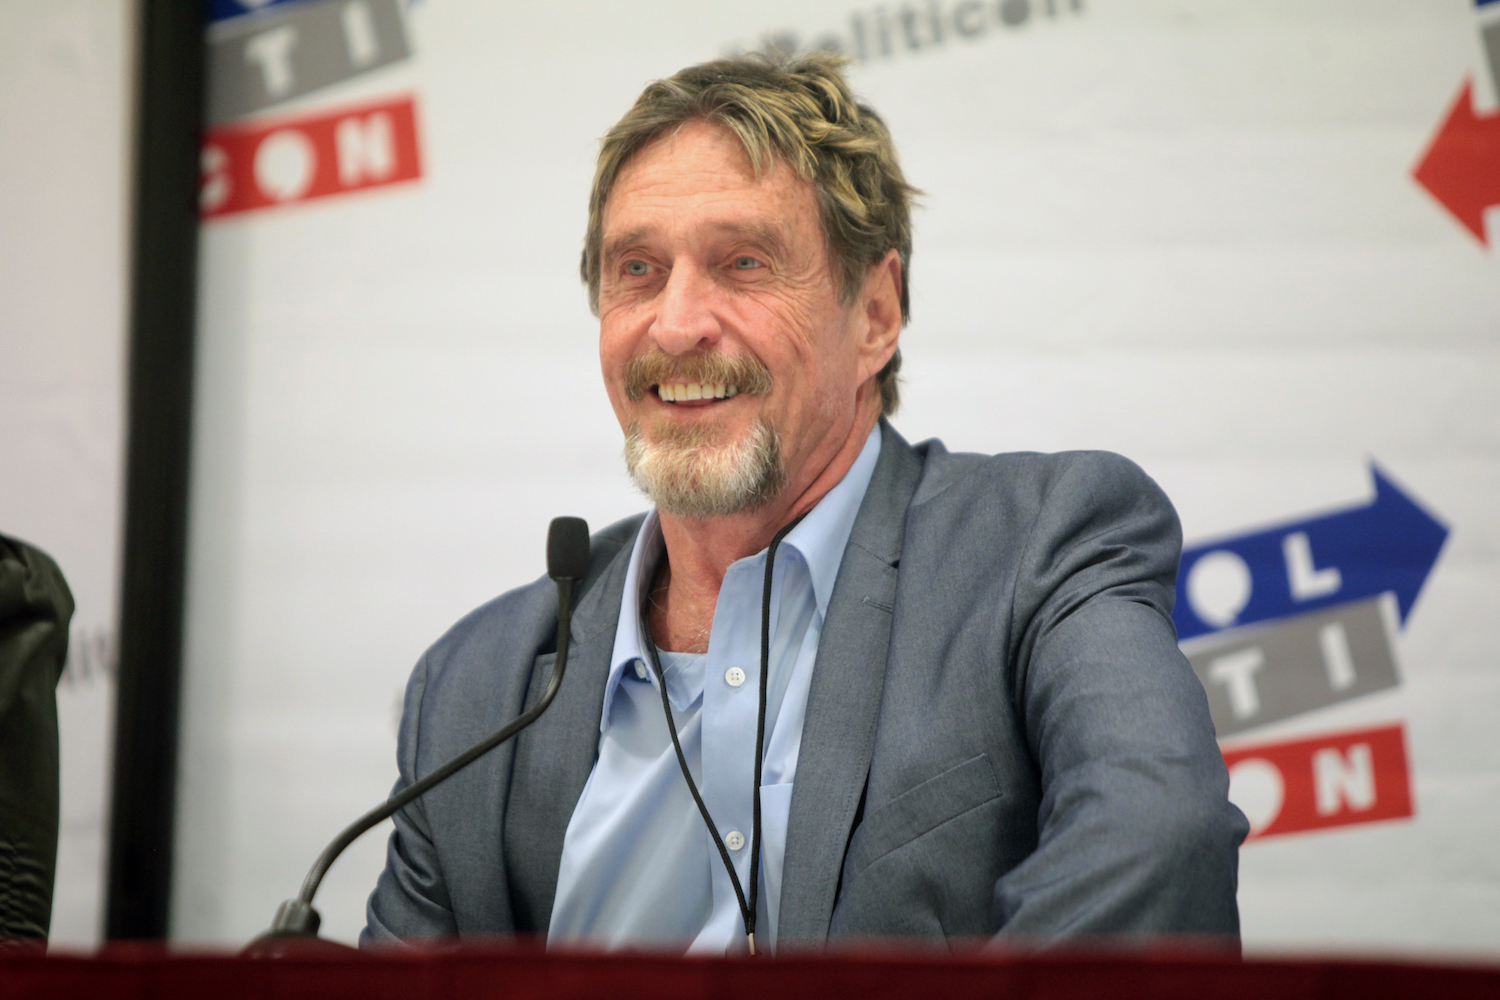 DOJ Indicts John McAfee on Money Laundering, Fraud Charges for Boosting ICOs